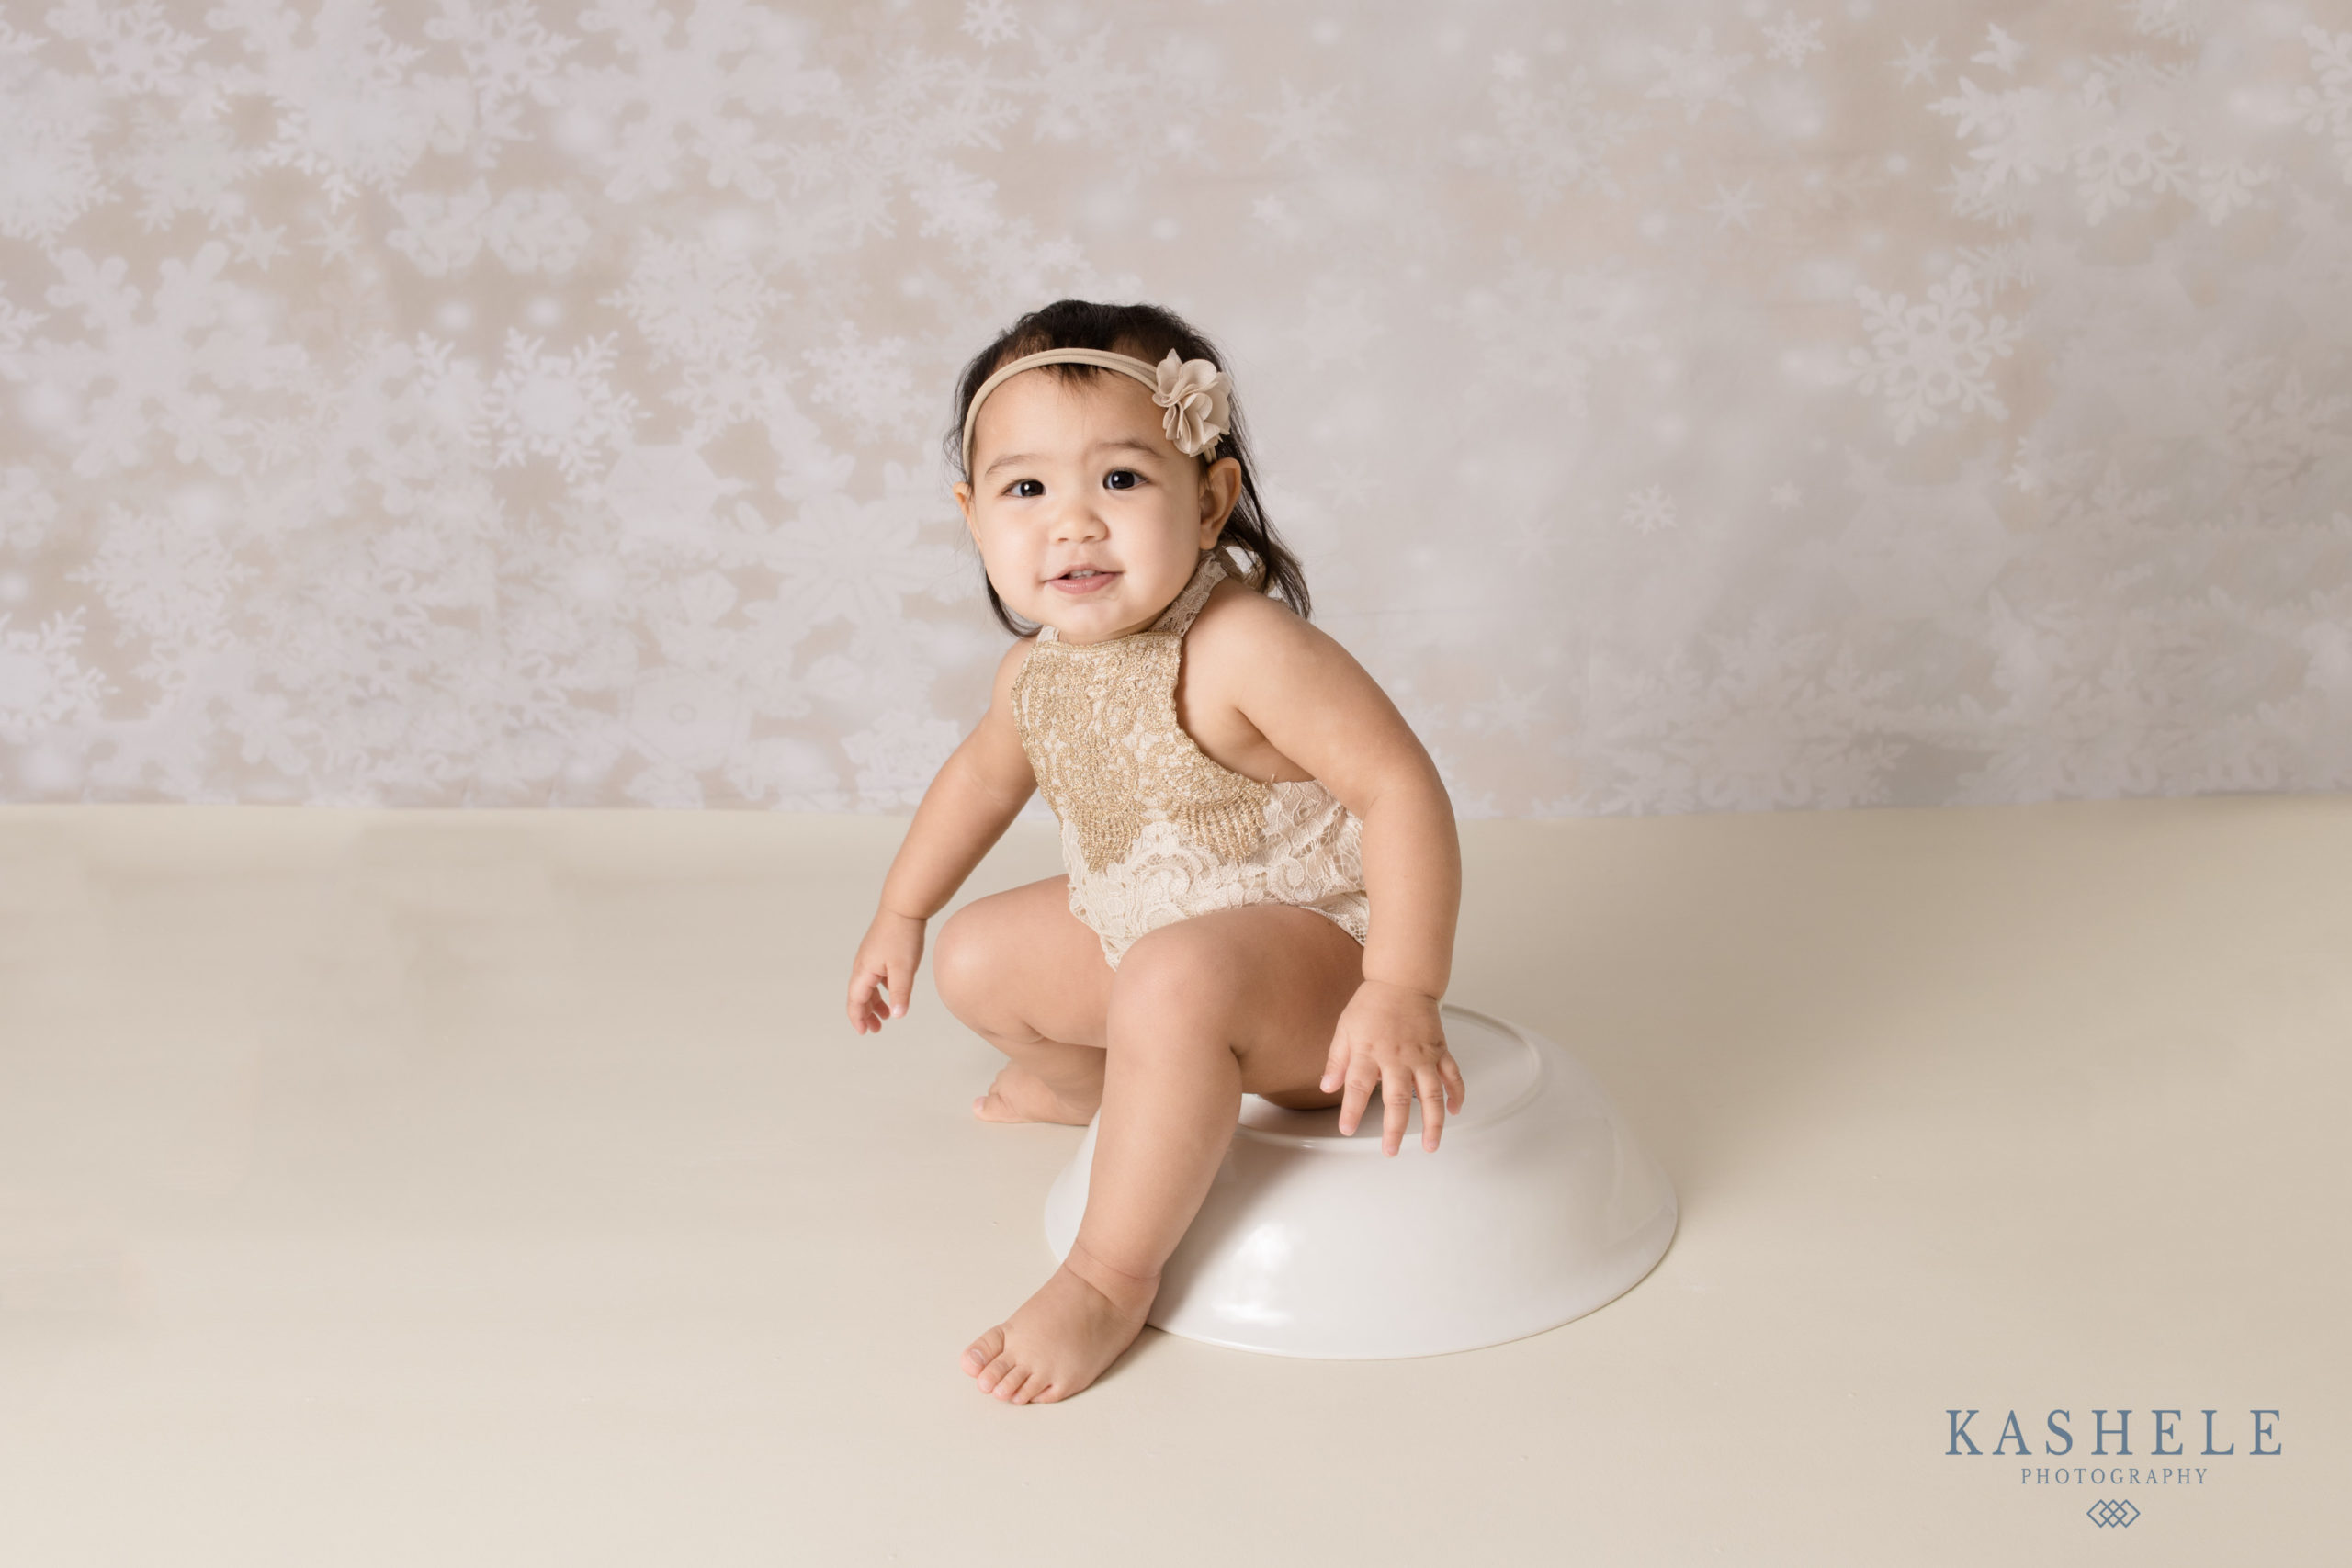 18 month milestone with little girl